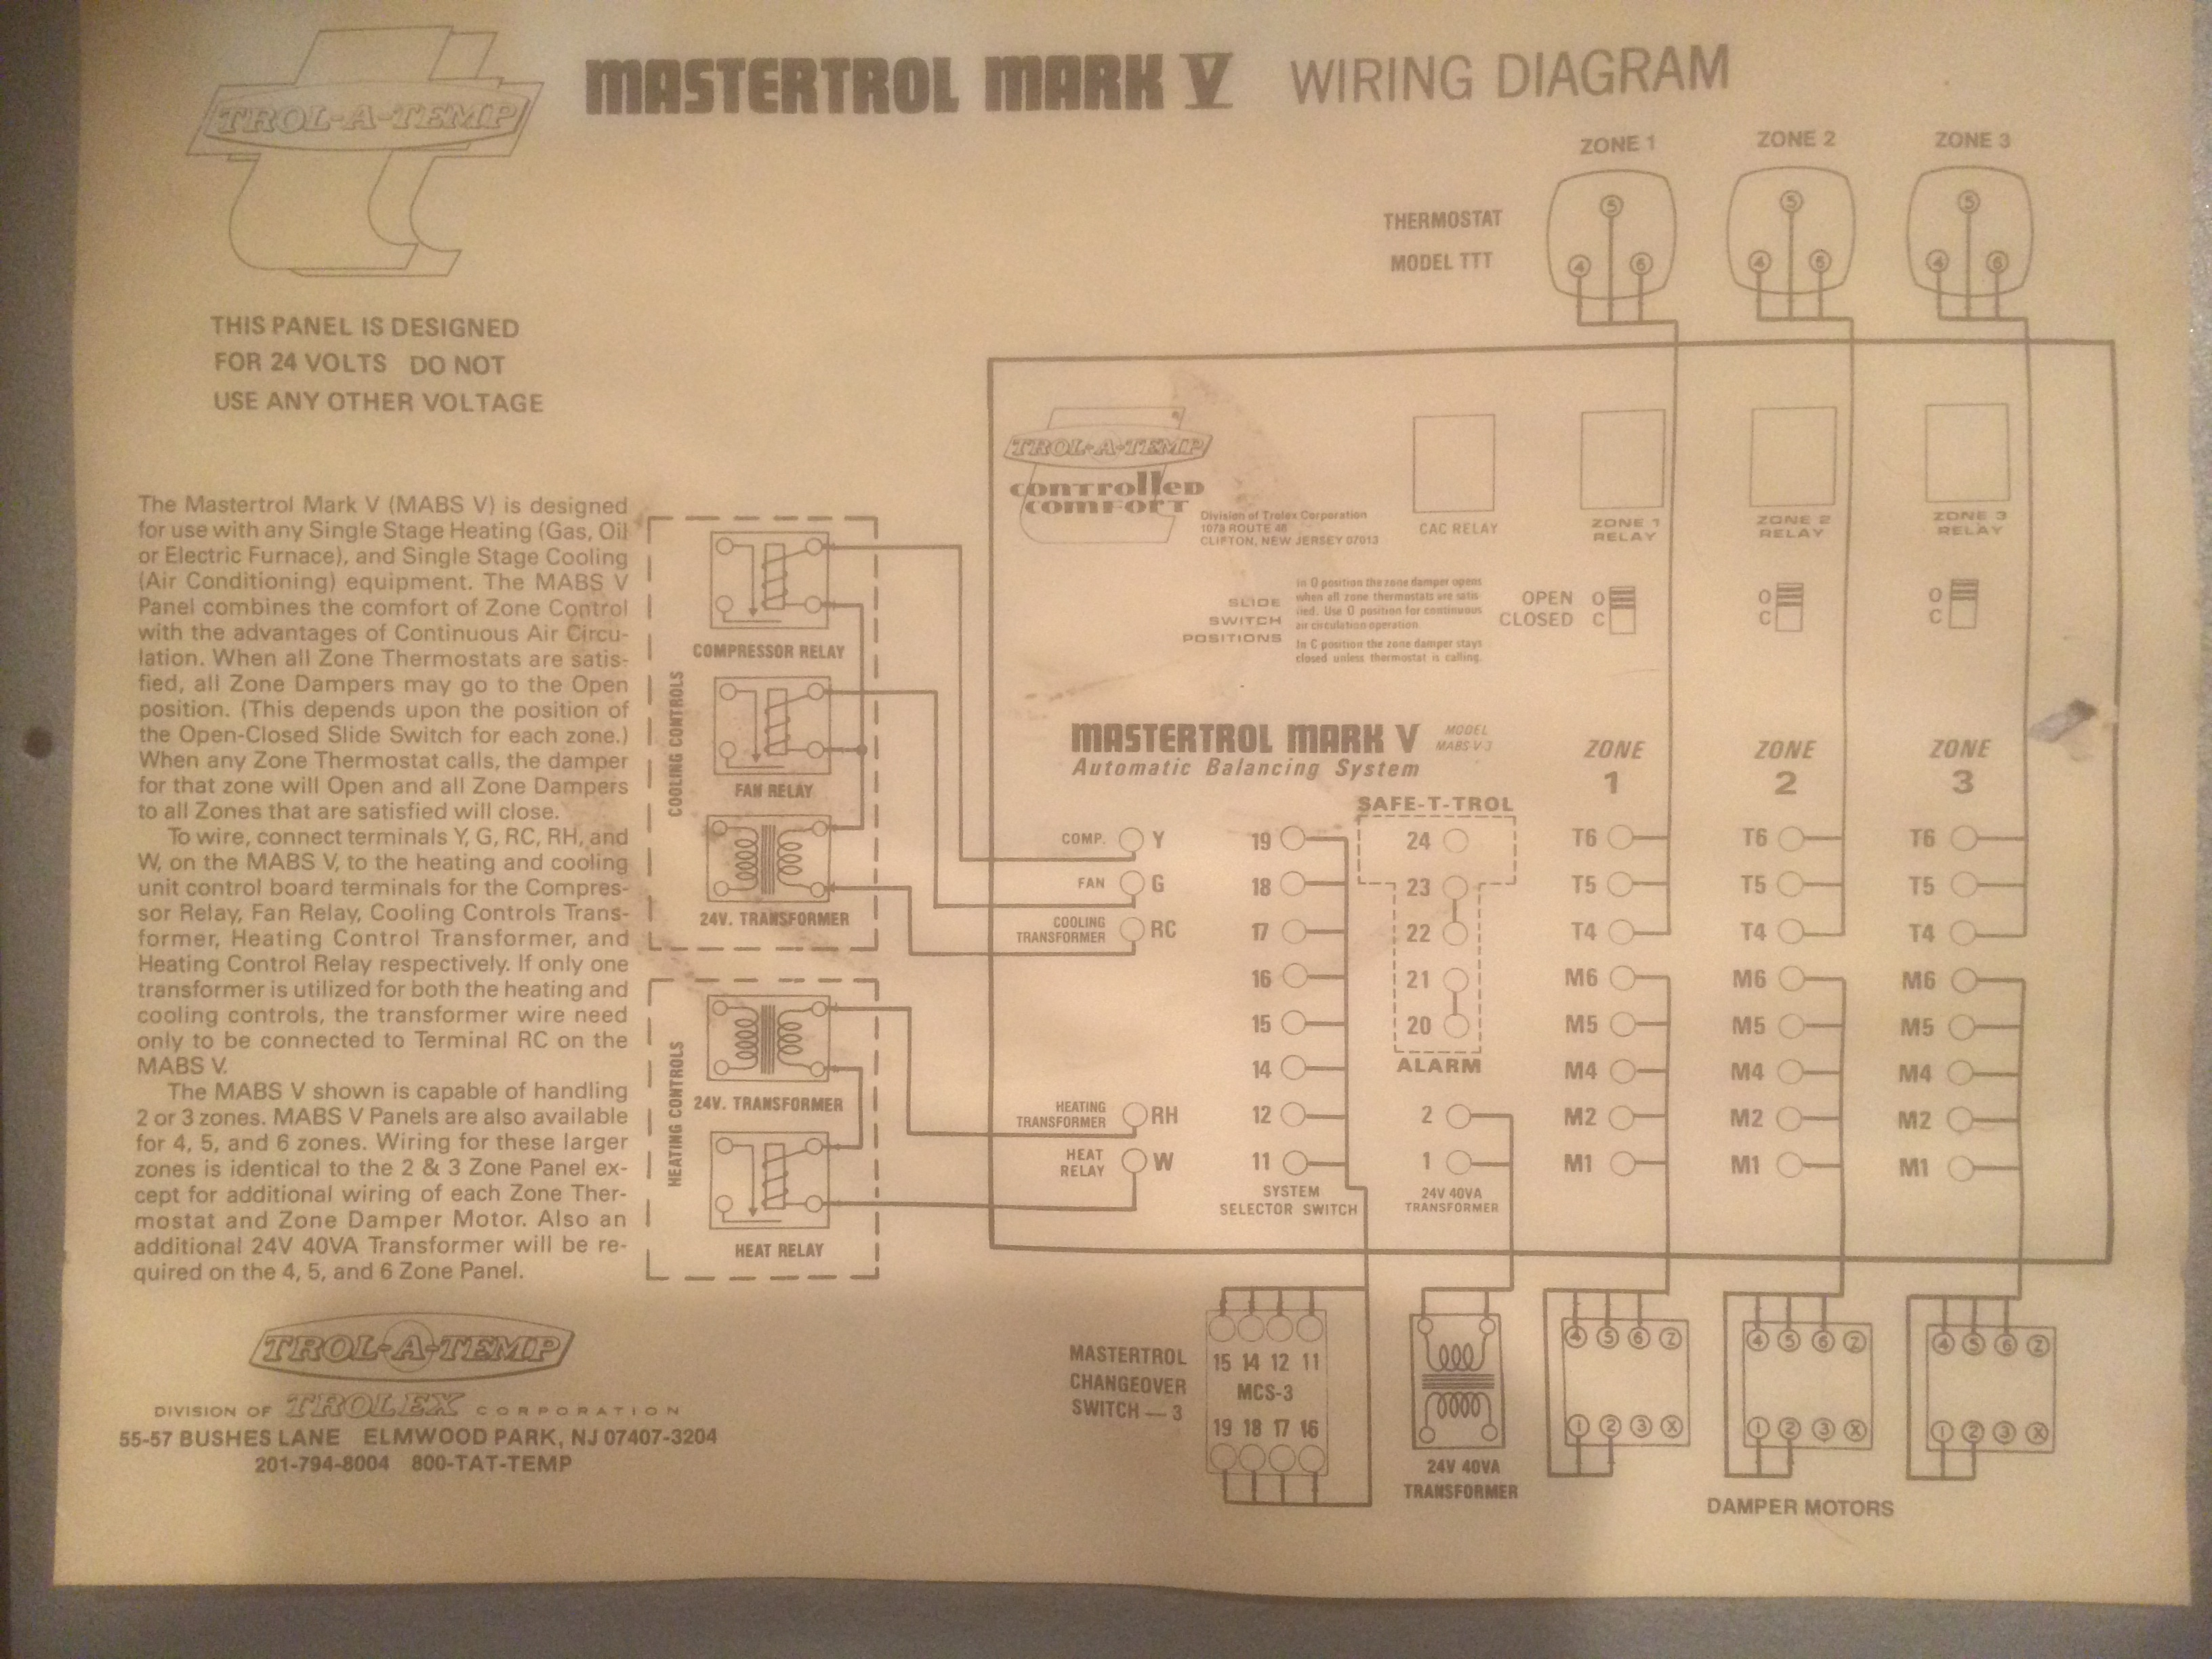 ... Mark Trol A Temp Wiring Diagram on temperature sensor circuit diagram, trol a temp damper ...